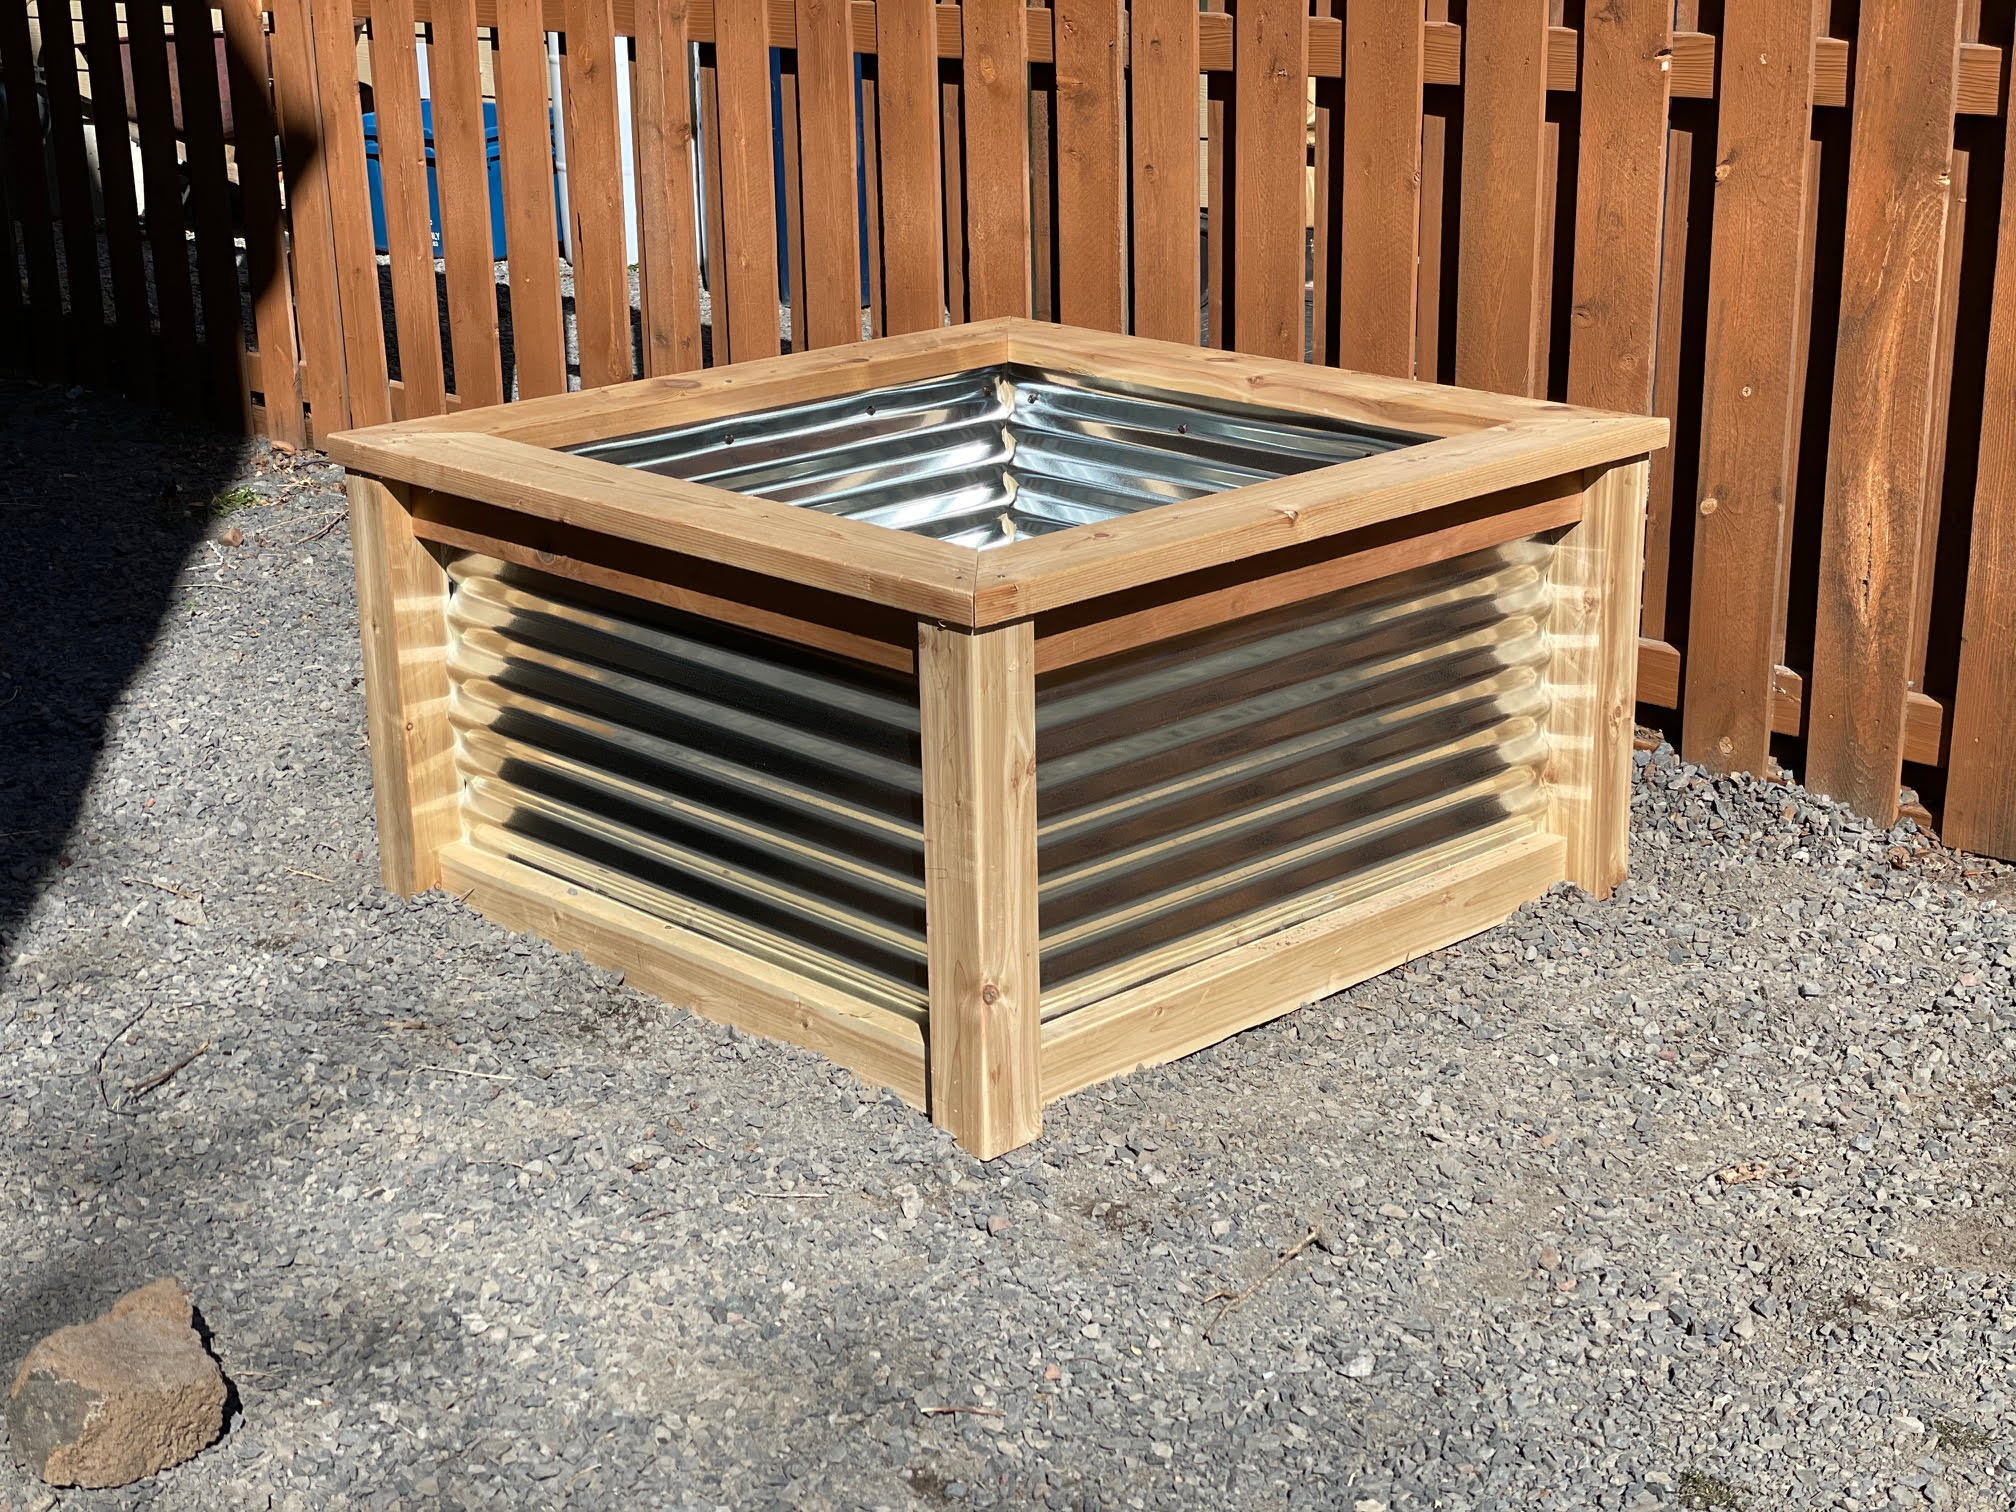 Adding corrugated metal to the raised garden bed